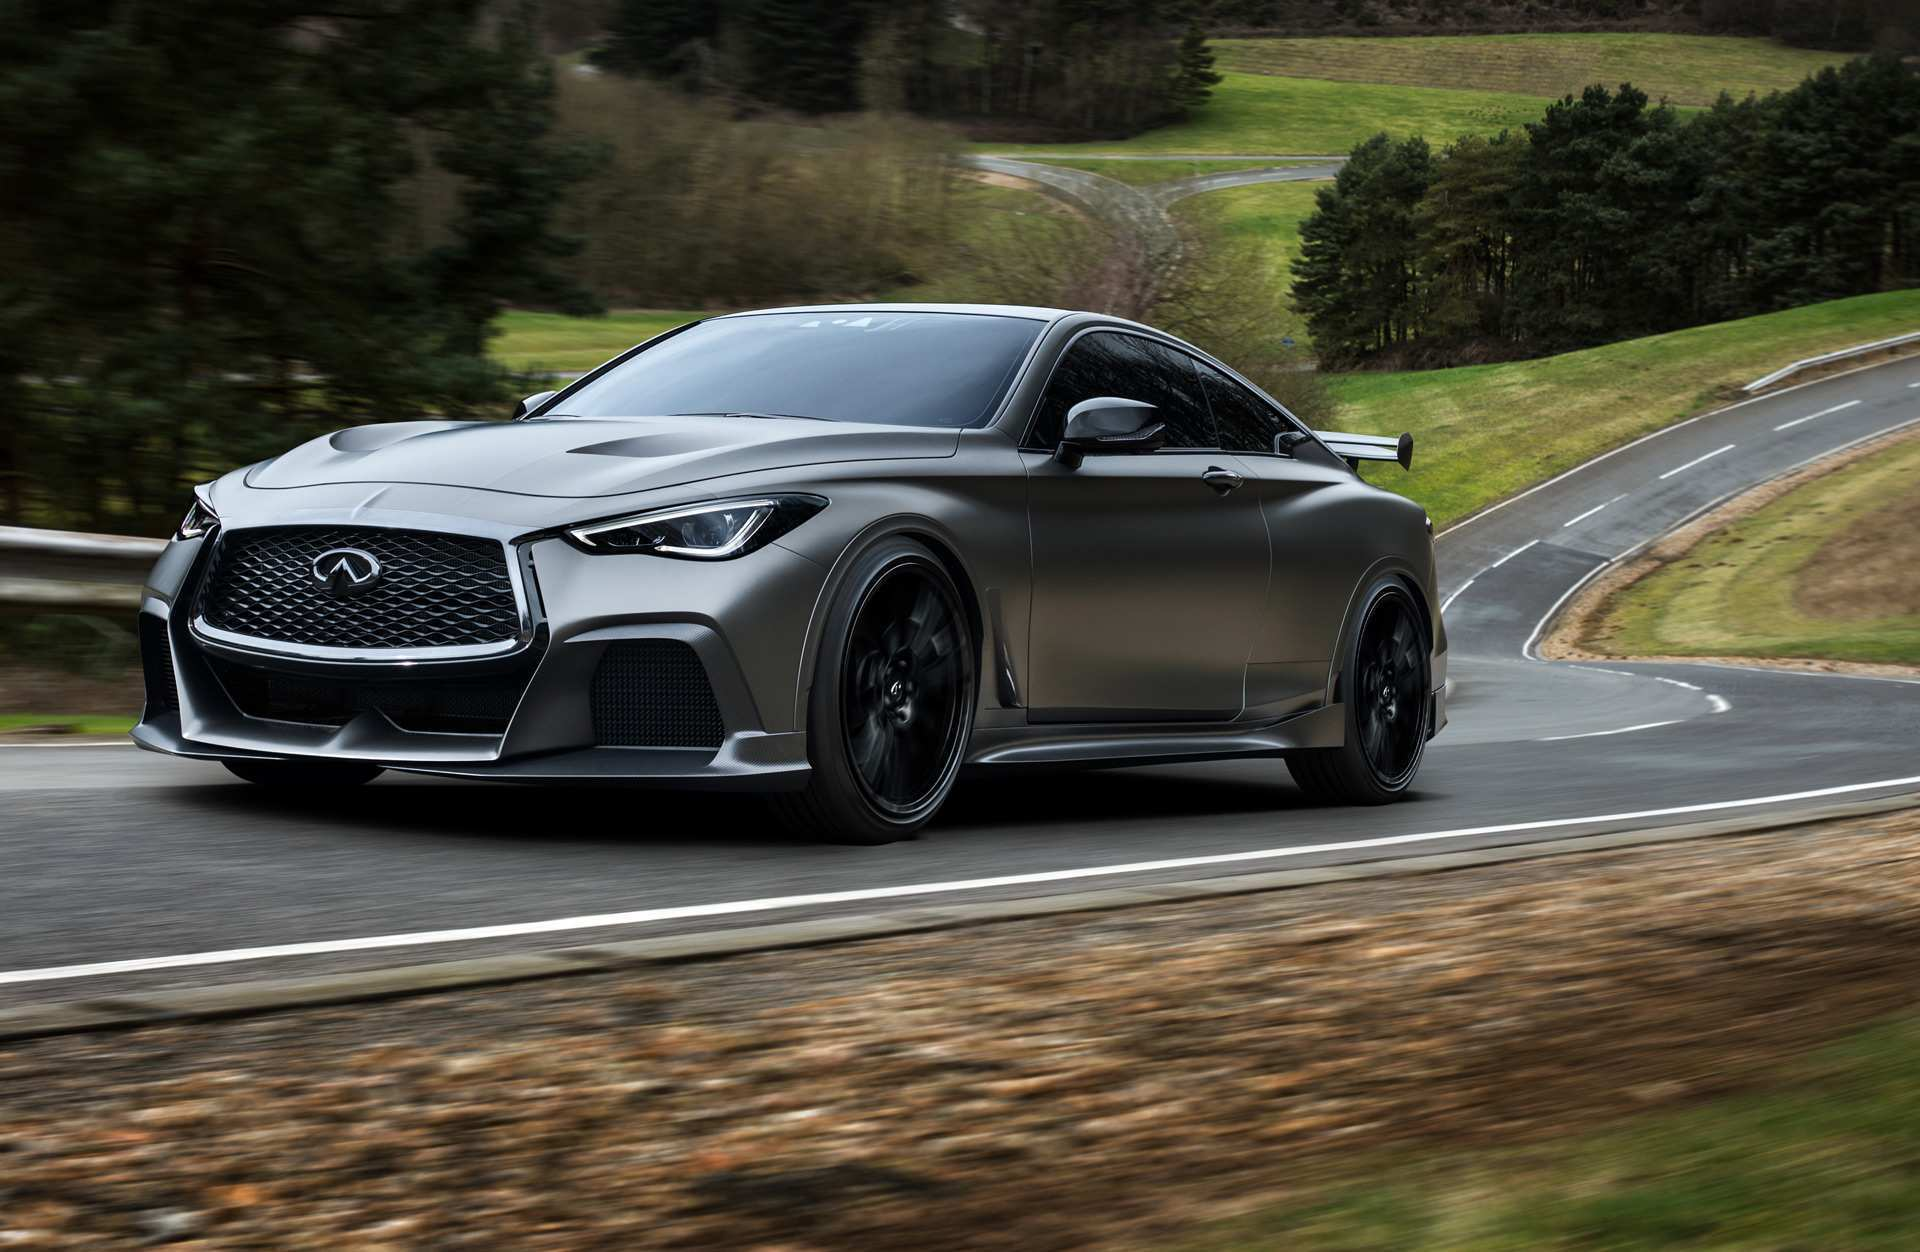 48 Concept of 2019 Infiniti Black S Exterior with 2019 Infiniti Black S